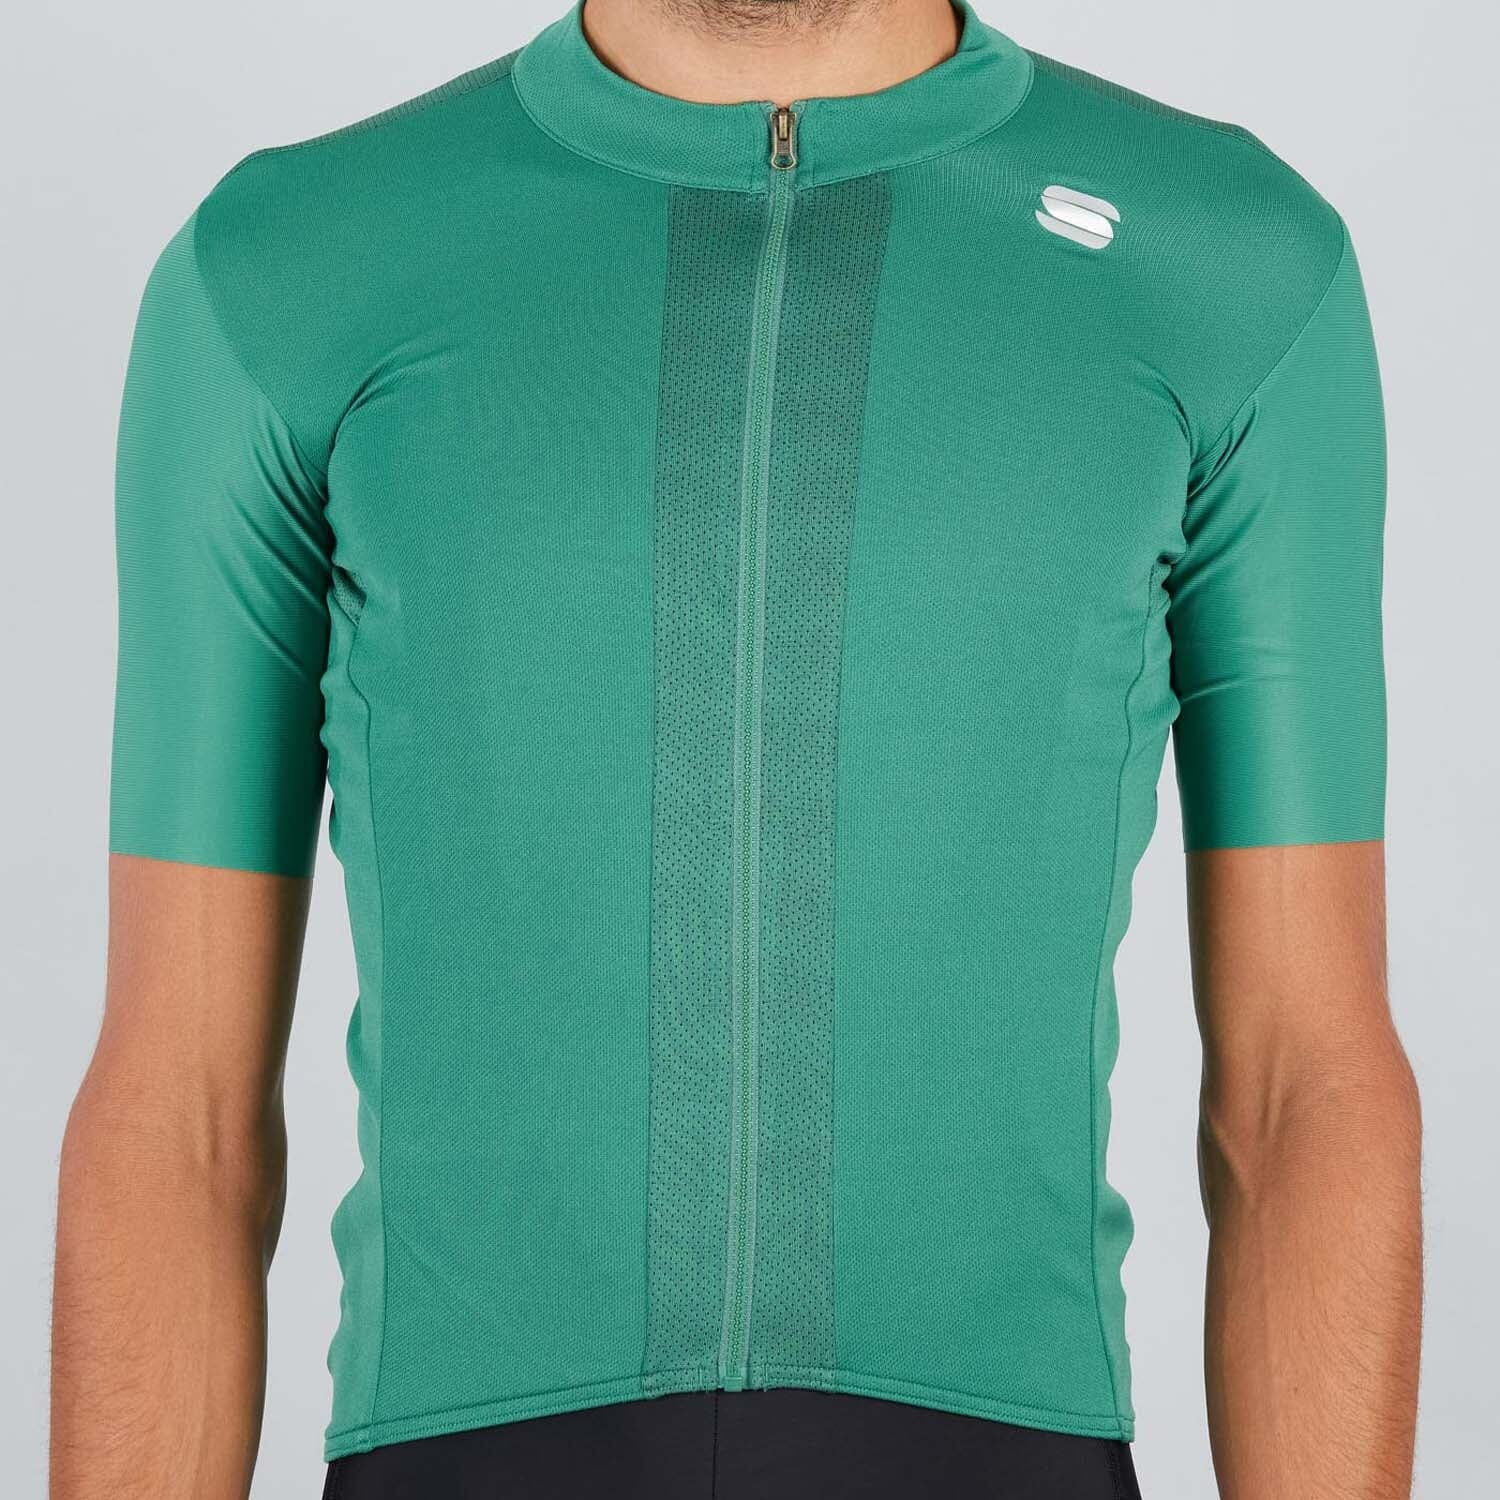 Sportful-Sportful Strike Jersey-Green Bottle/Black-XS-SF200123681-saddleback-elite-performance-cycling